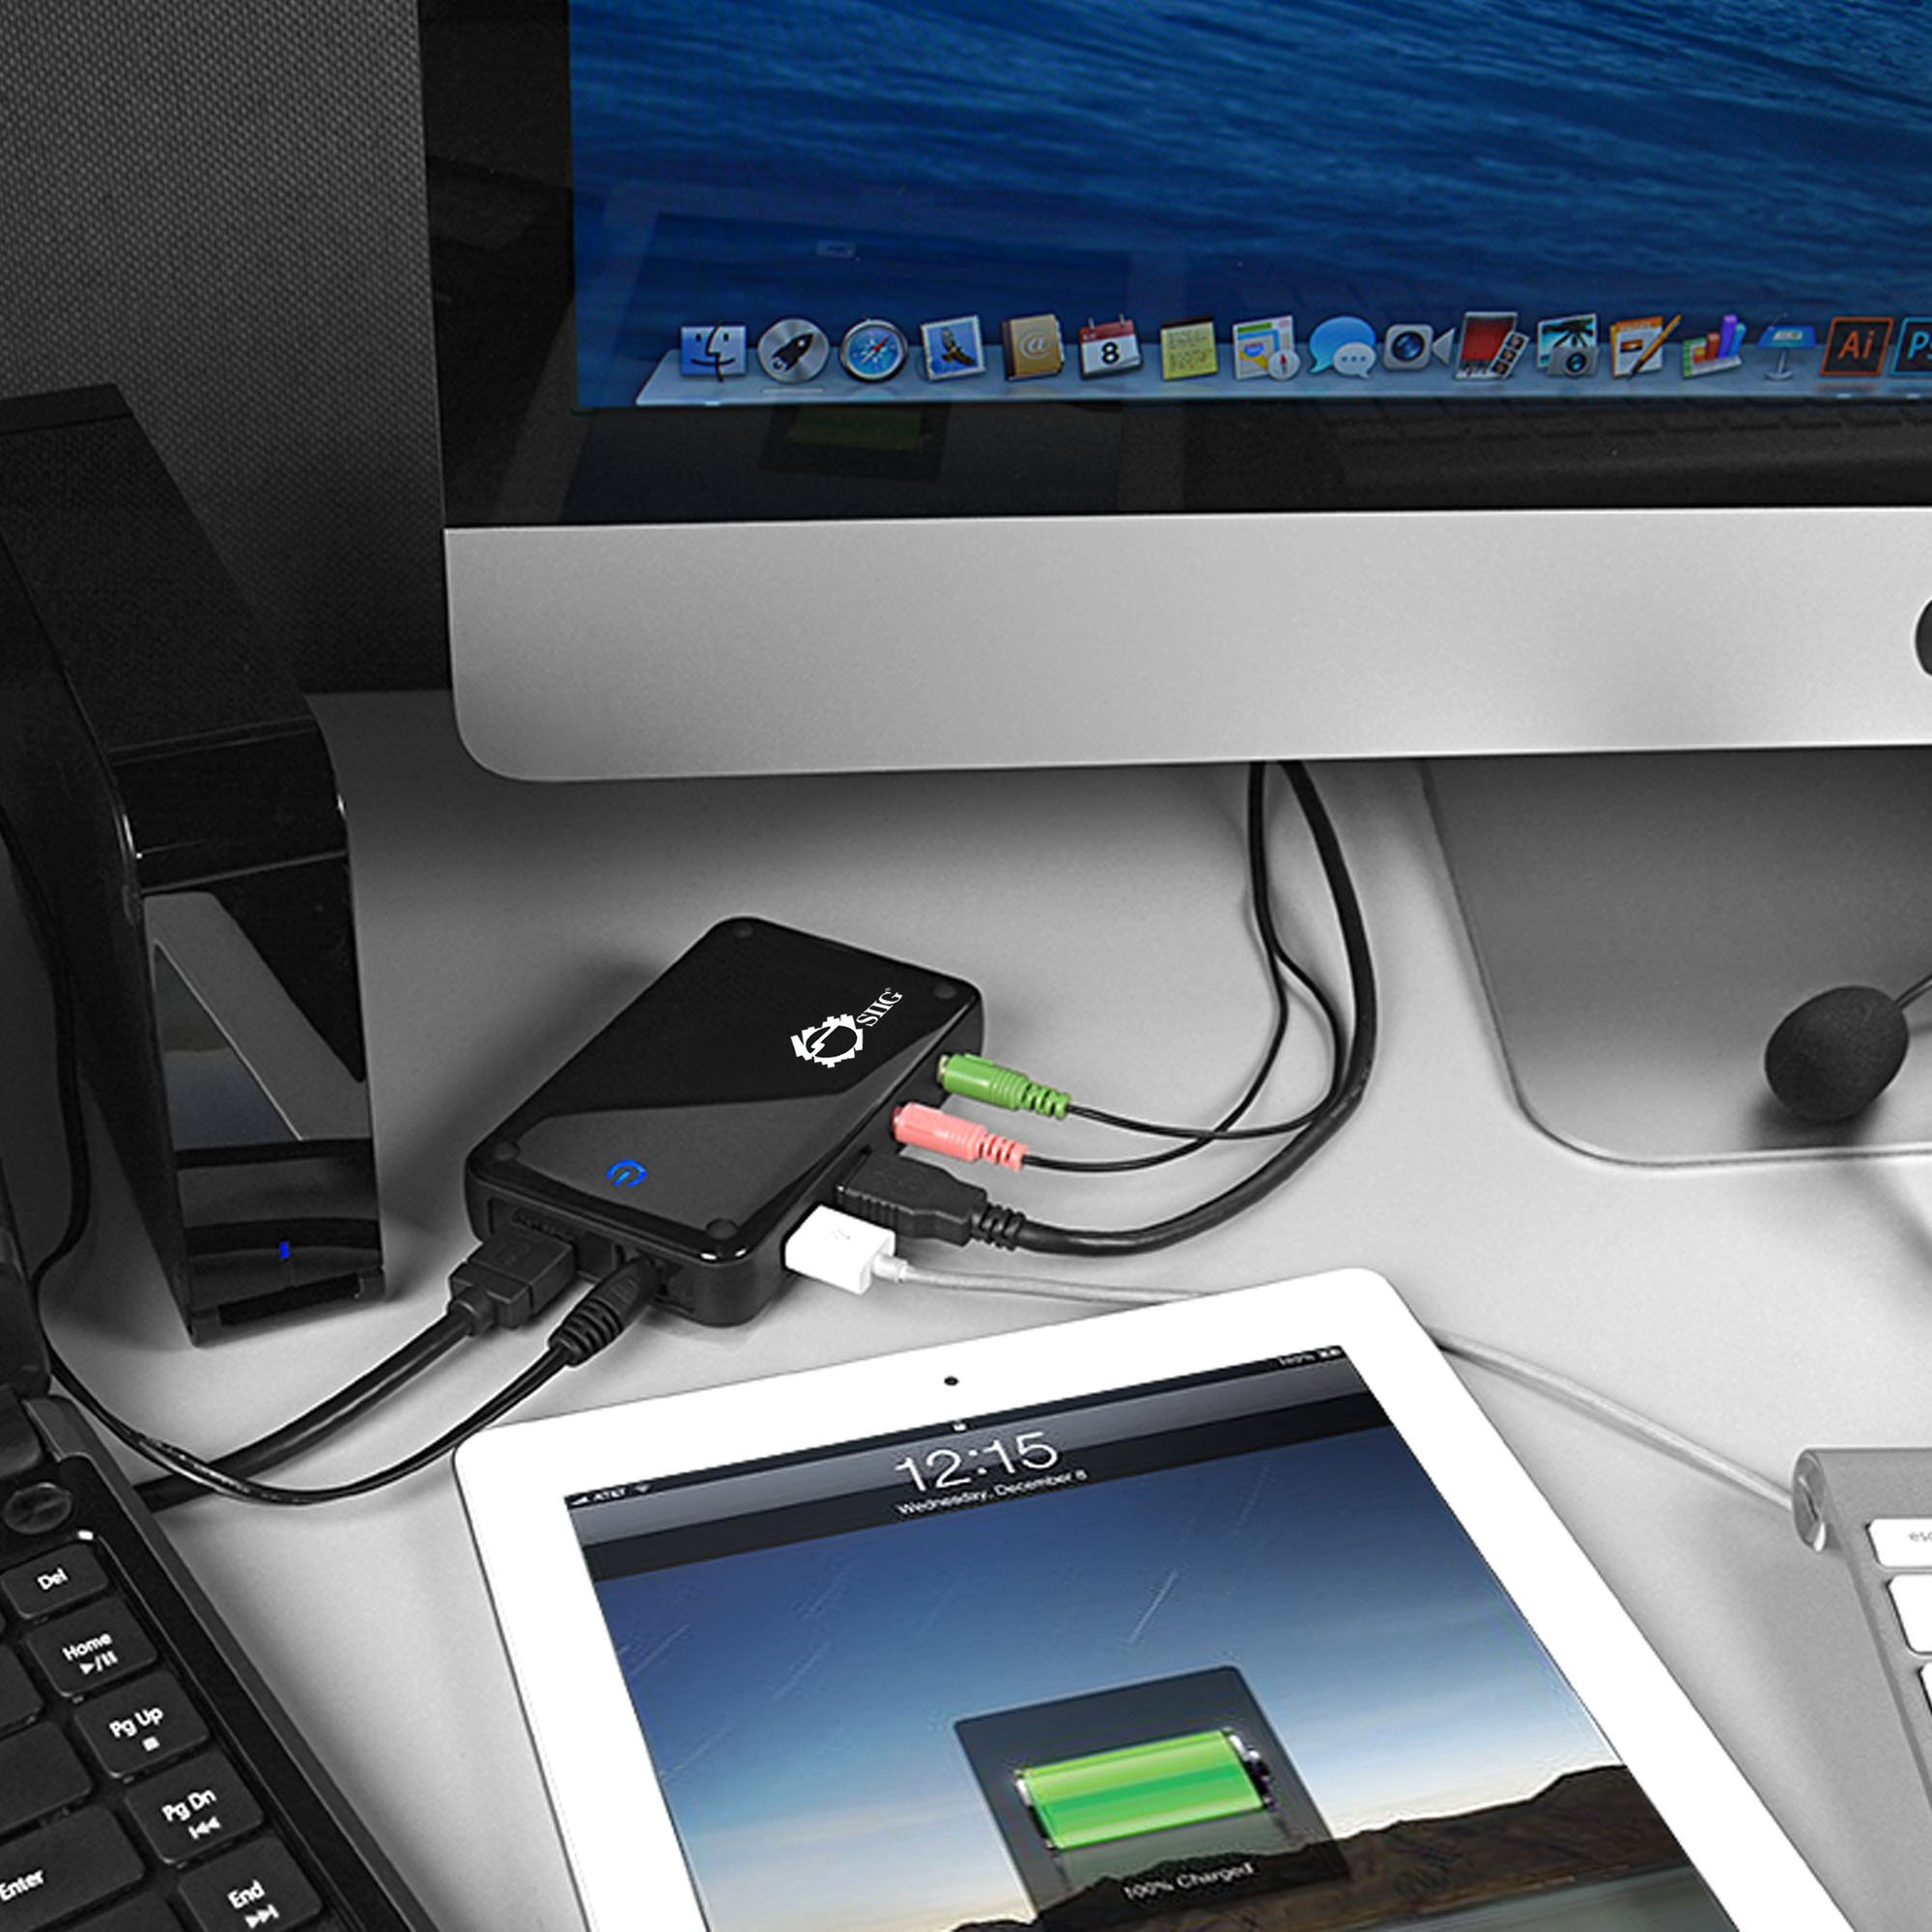 SIIG Portable USB 3.0 Dual Video Docking Station Adds HDMI or VGA Video Output, 2 USB 3.0 Ports